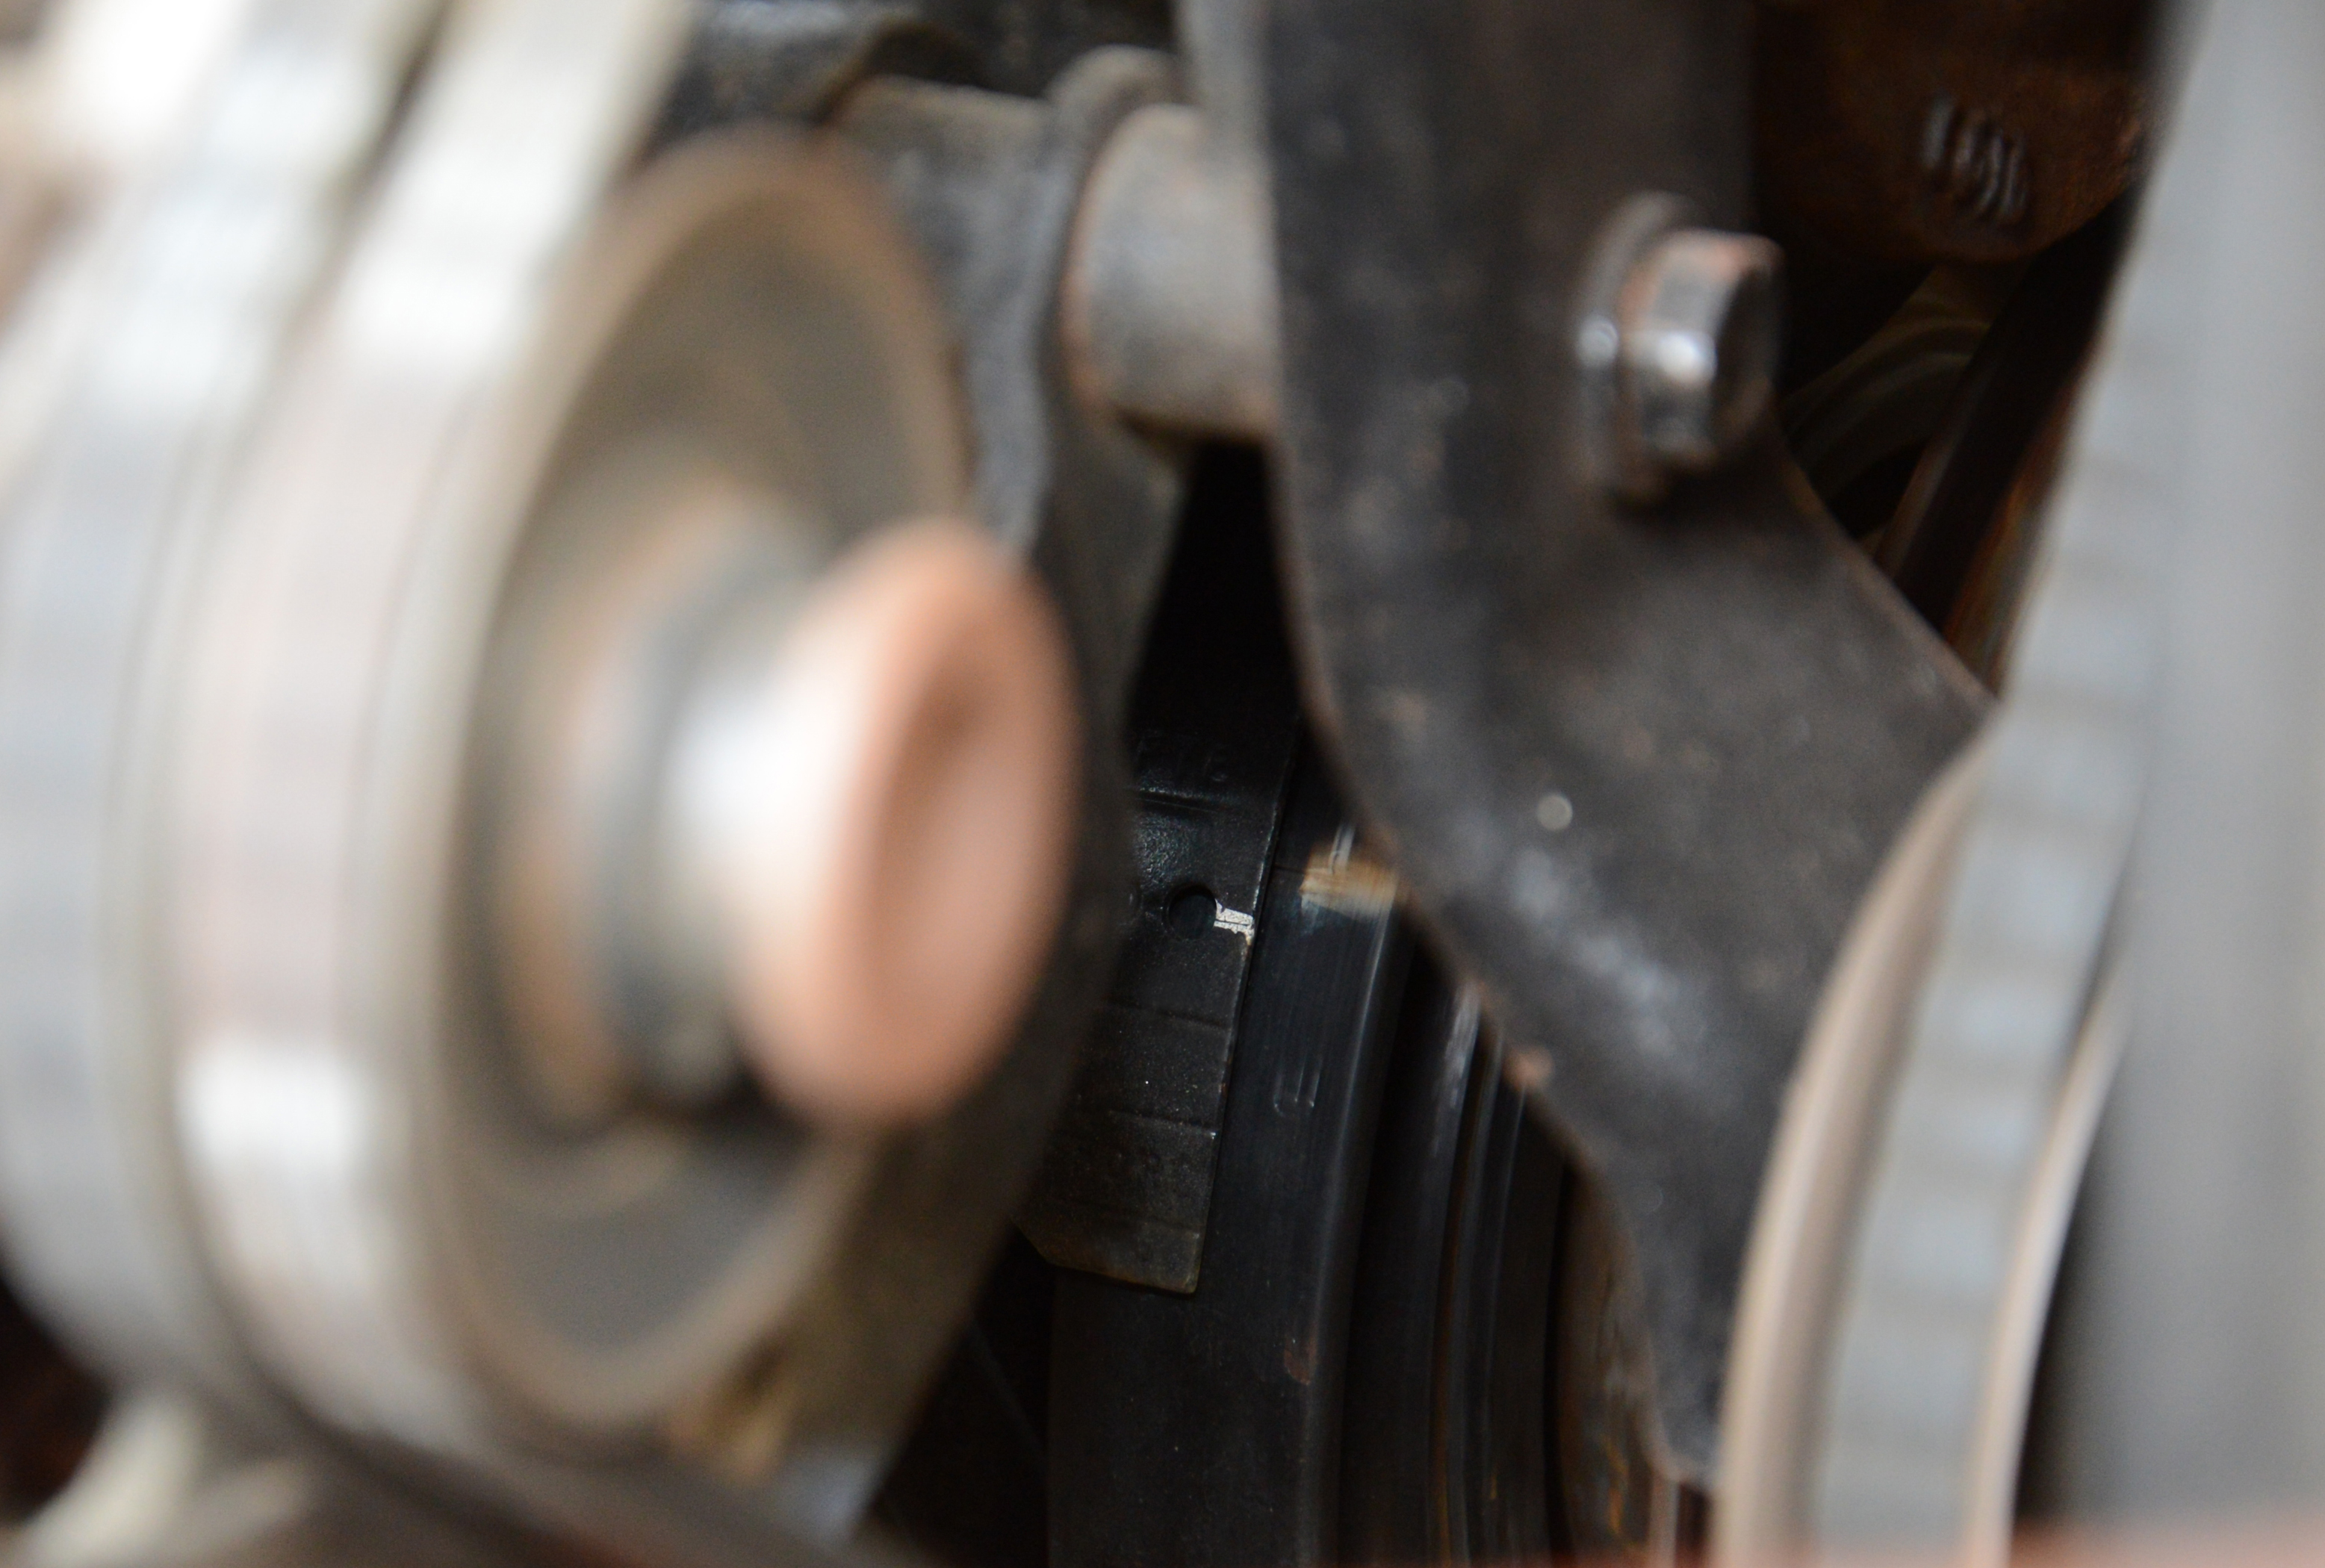 Ignition Timing_Image04 (0793)width=